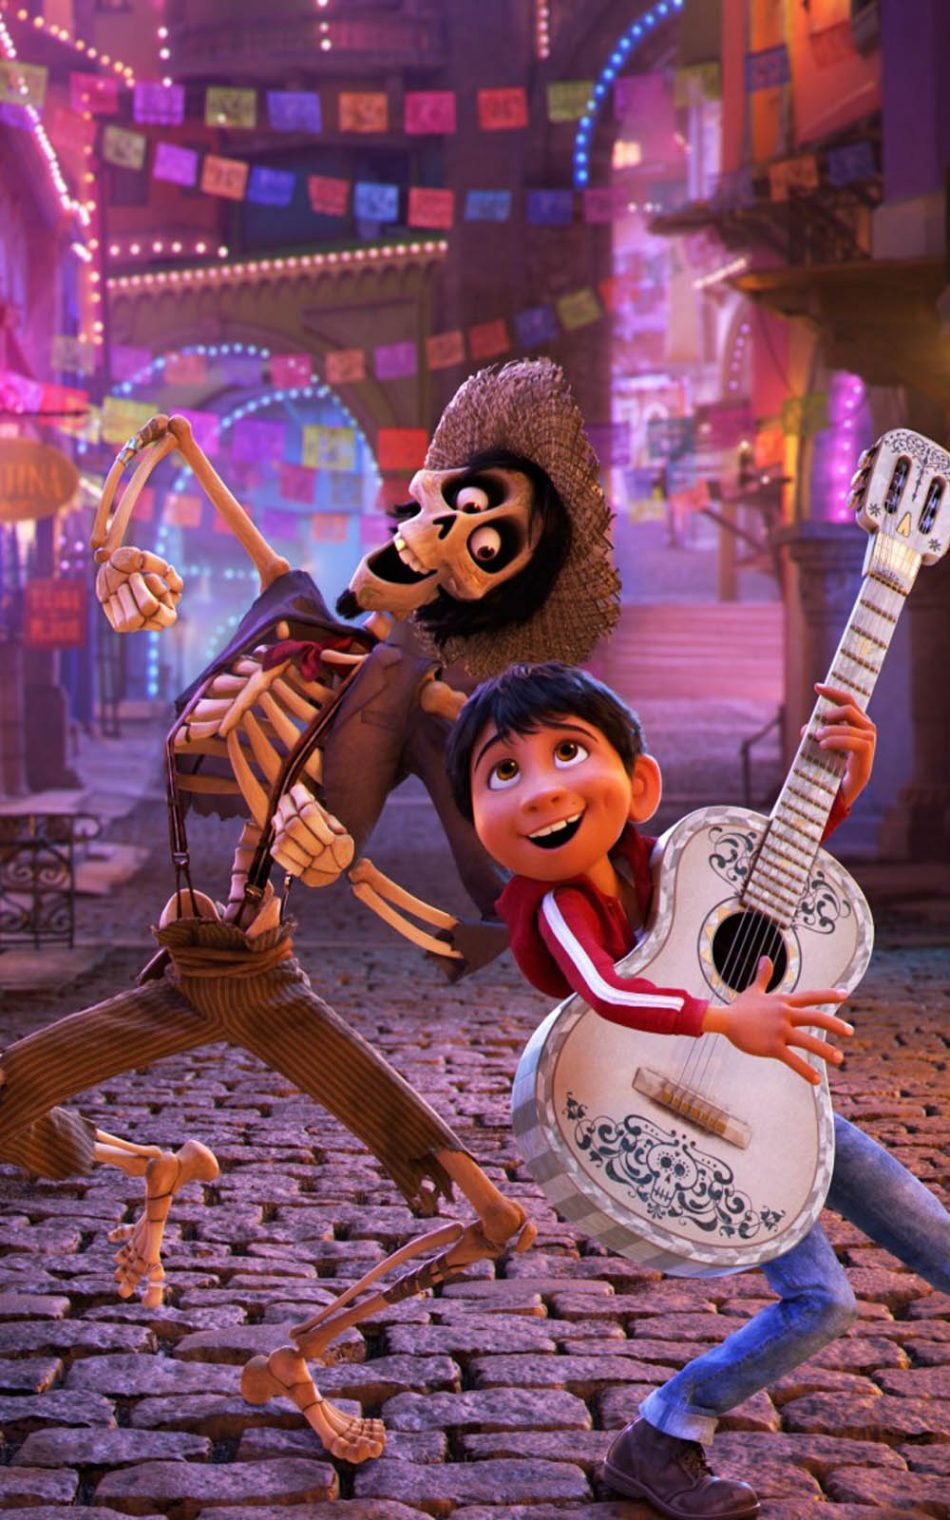 coco animation movie 2017 - download free 100% pure hd quality